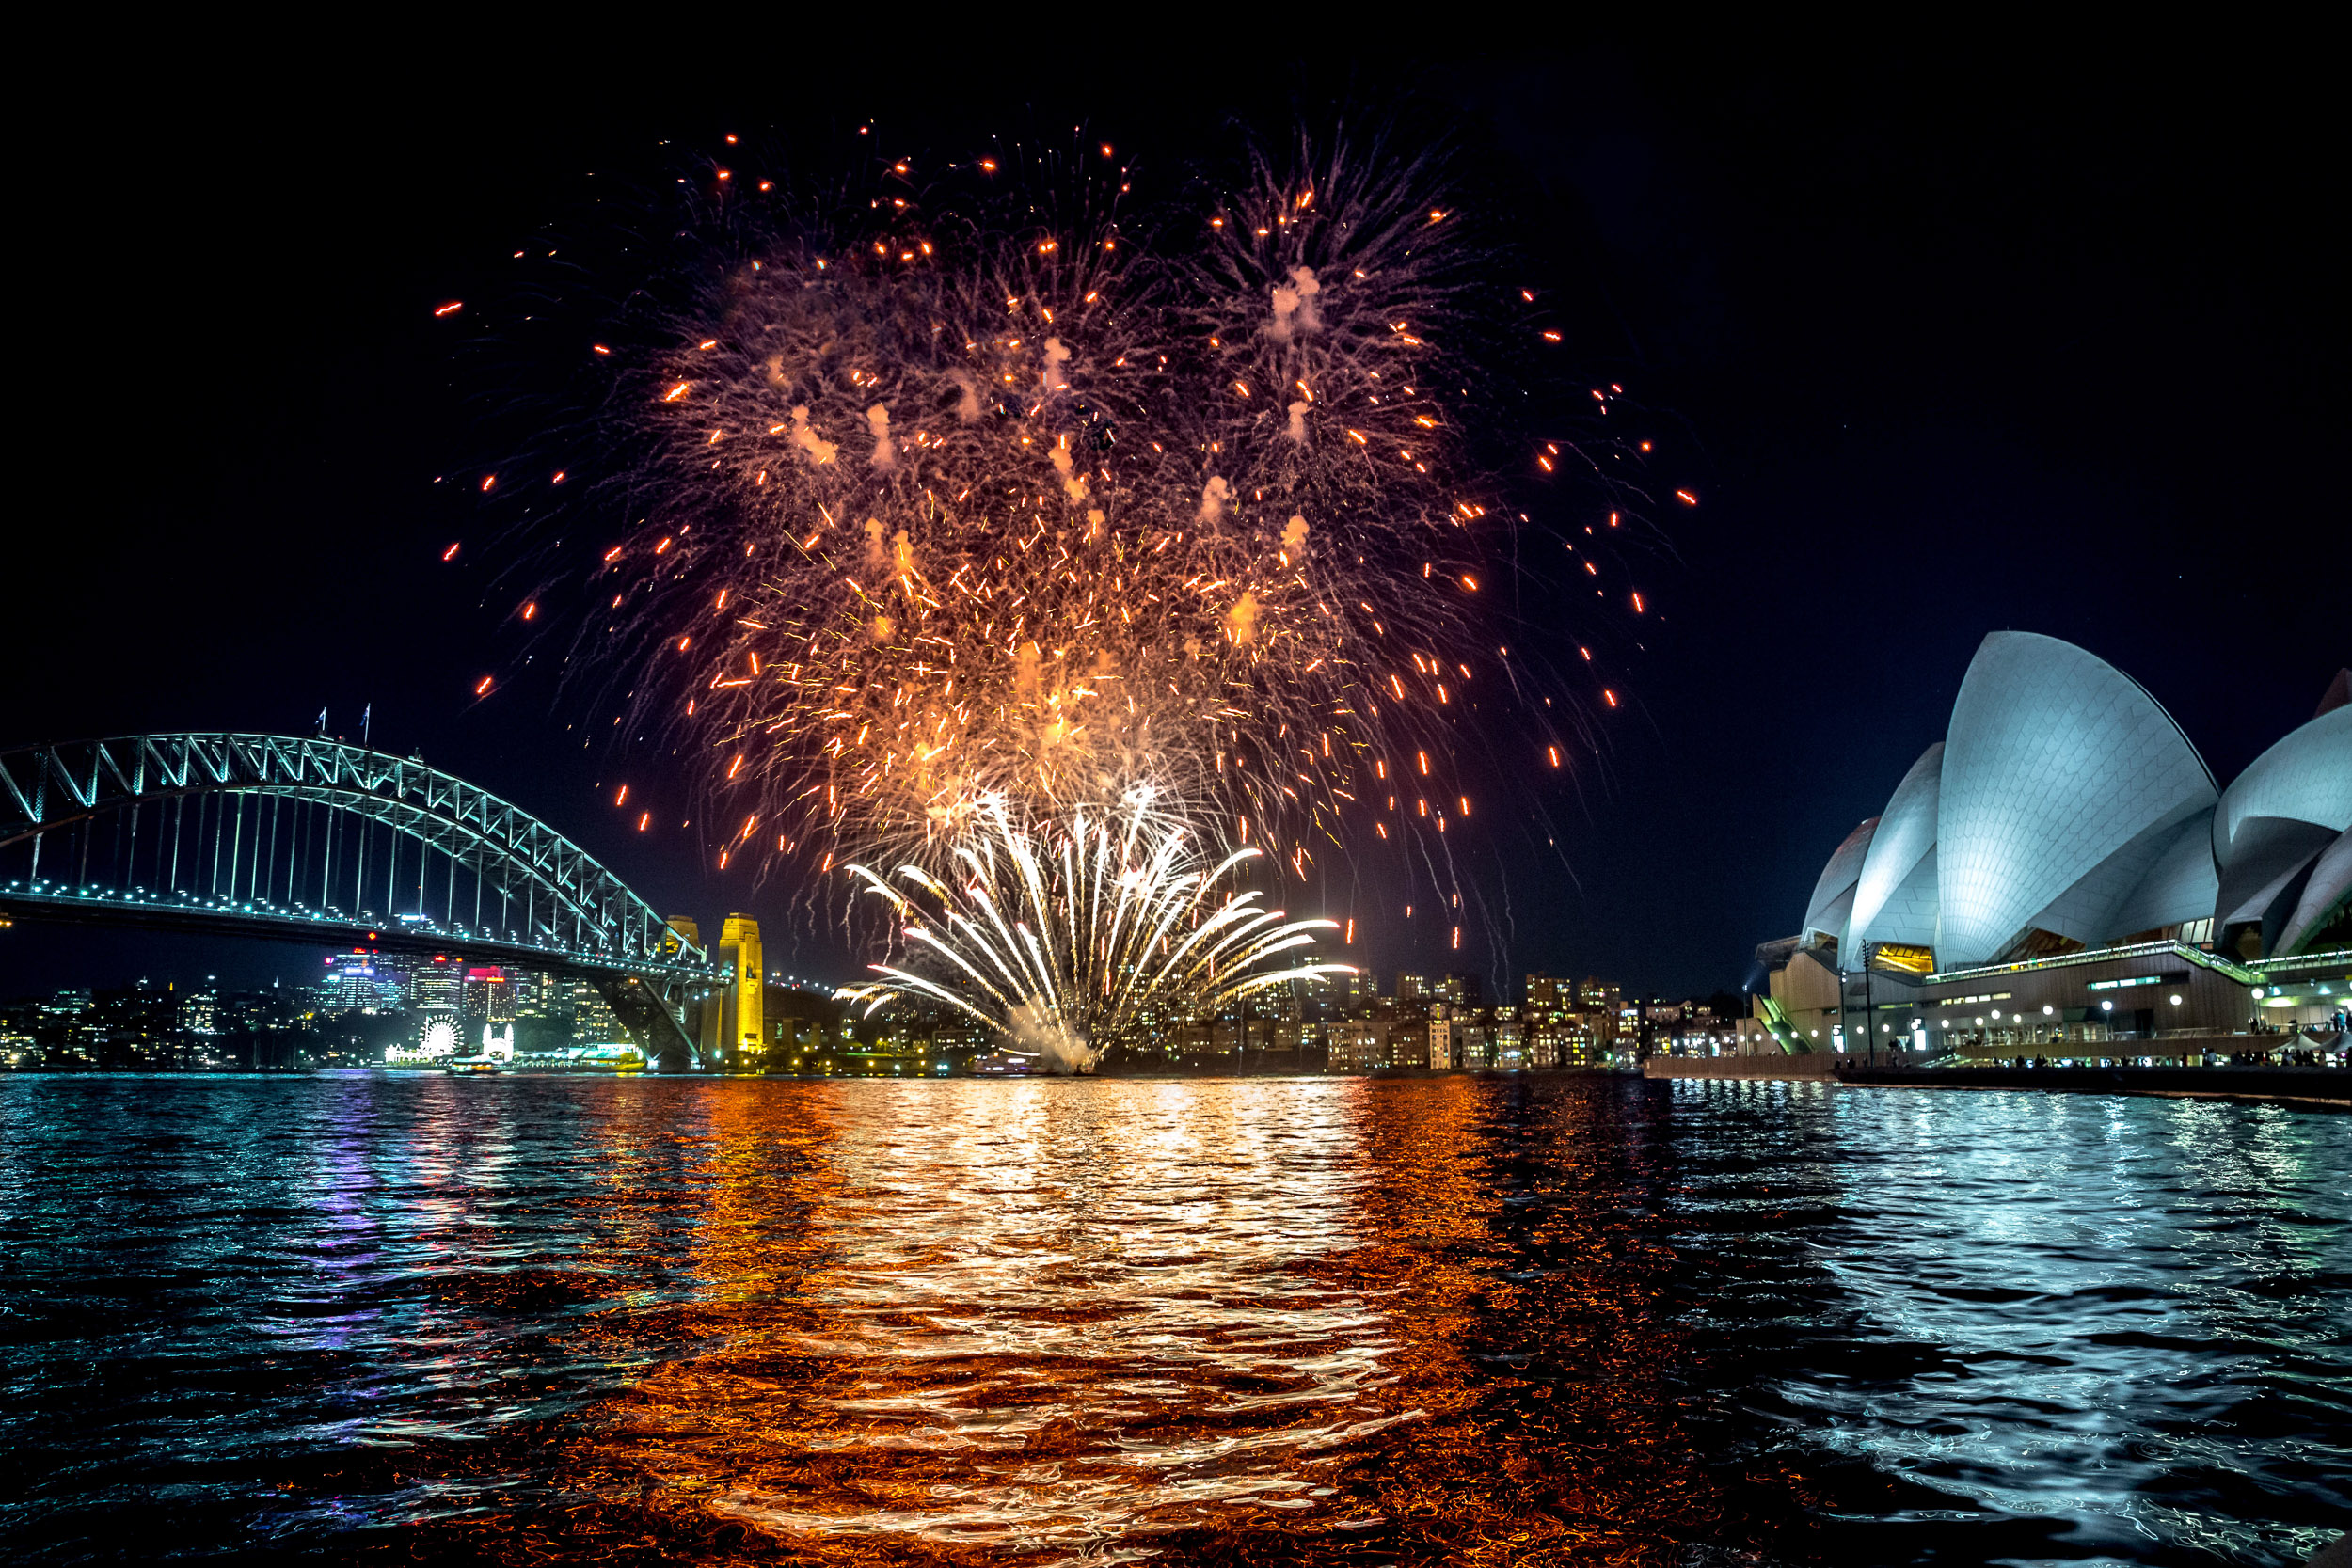 Sydney Harbour Fireworks - NBC Today Show broadcast